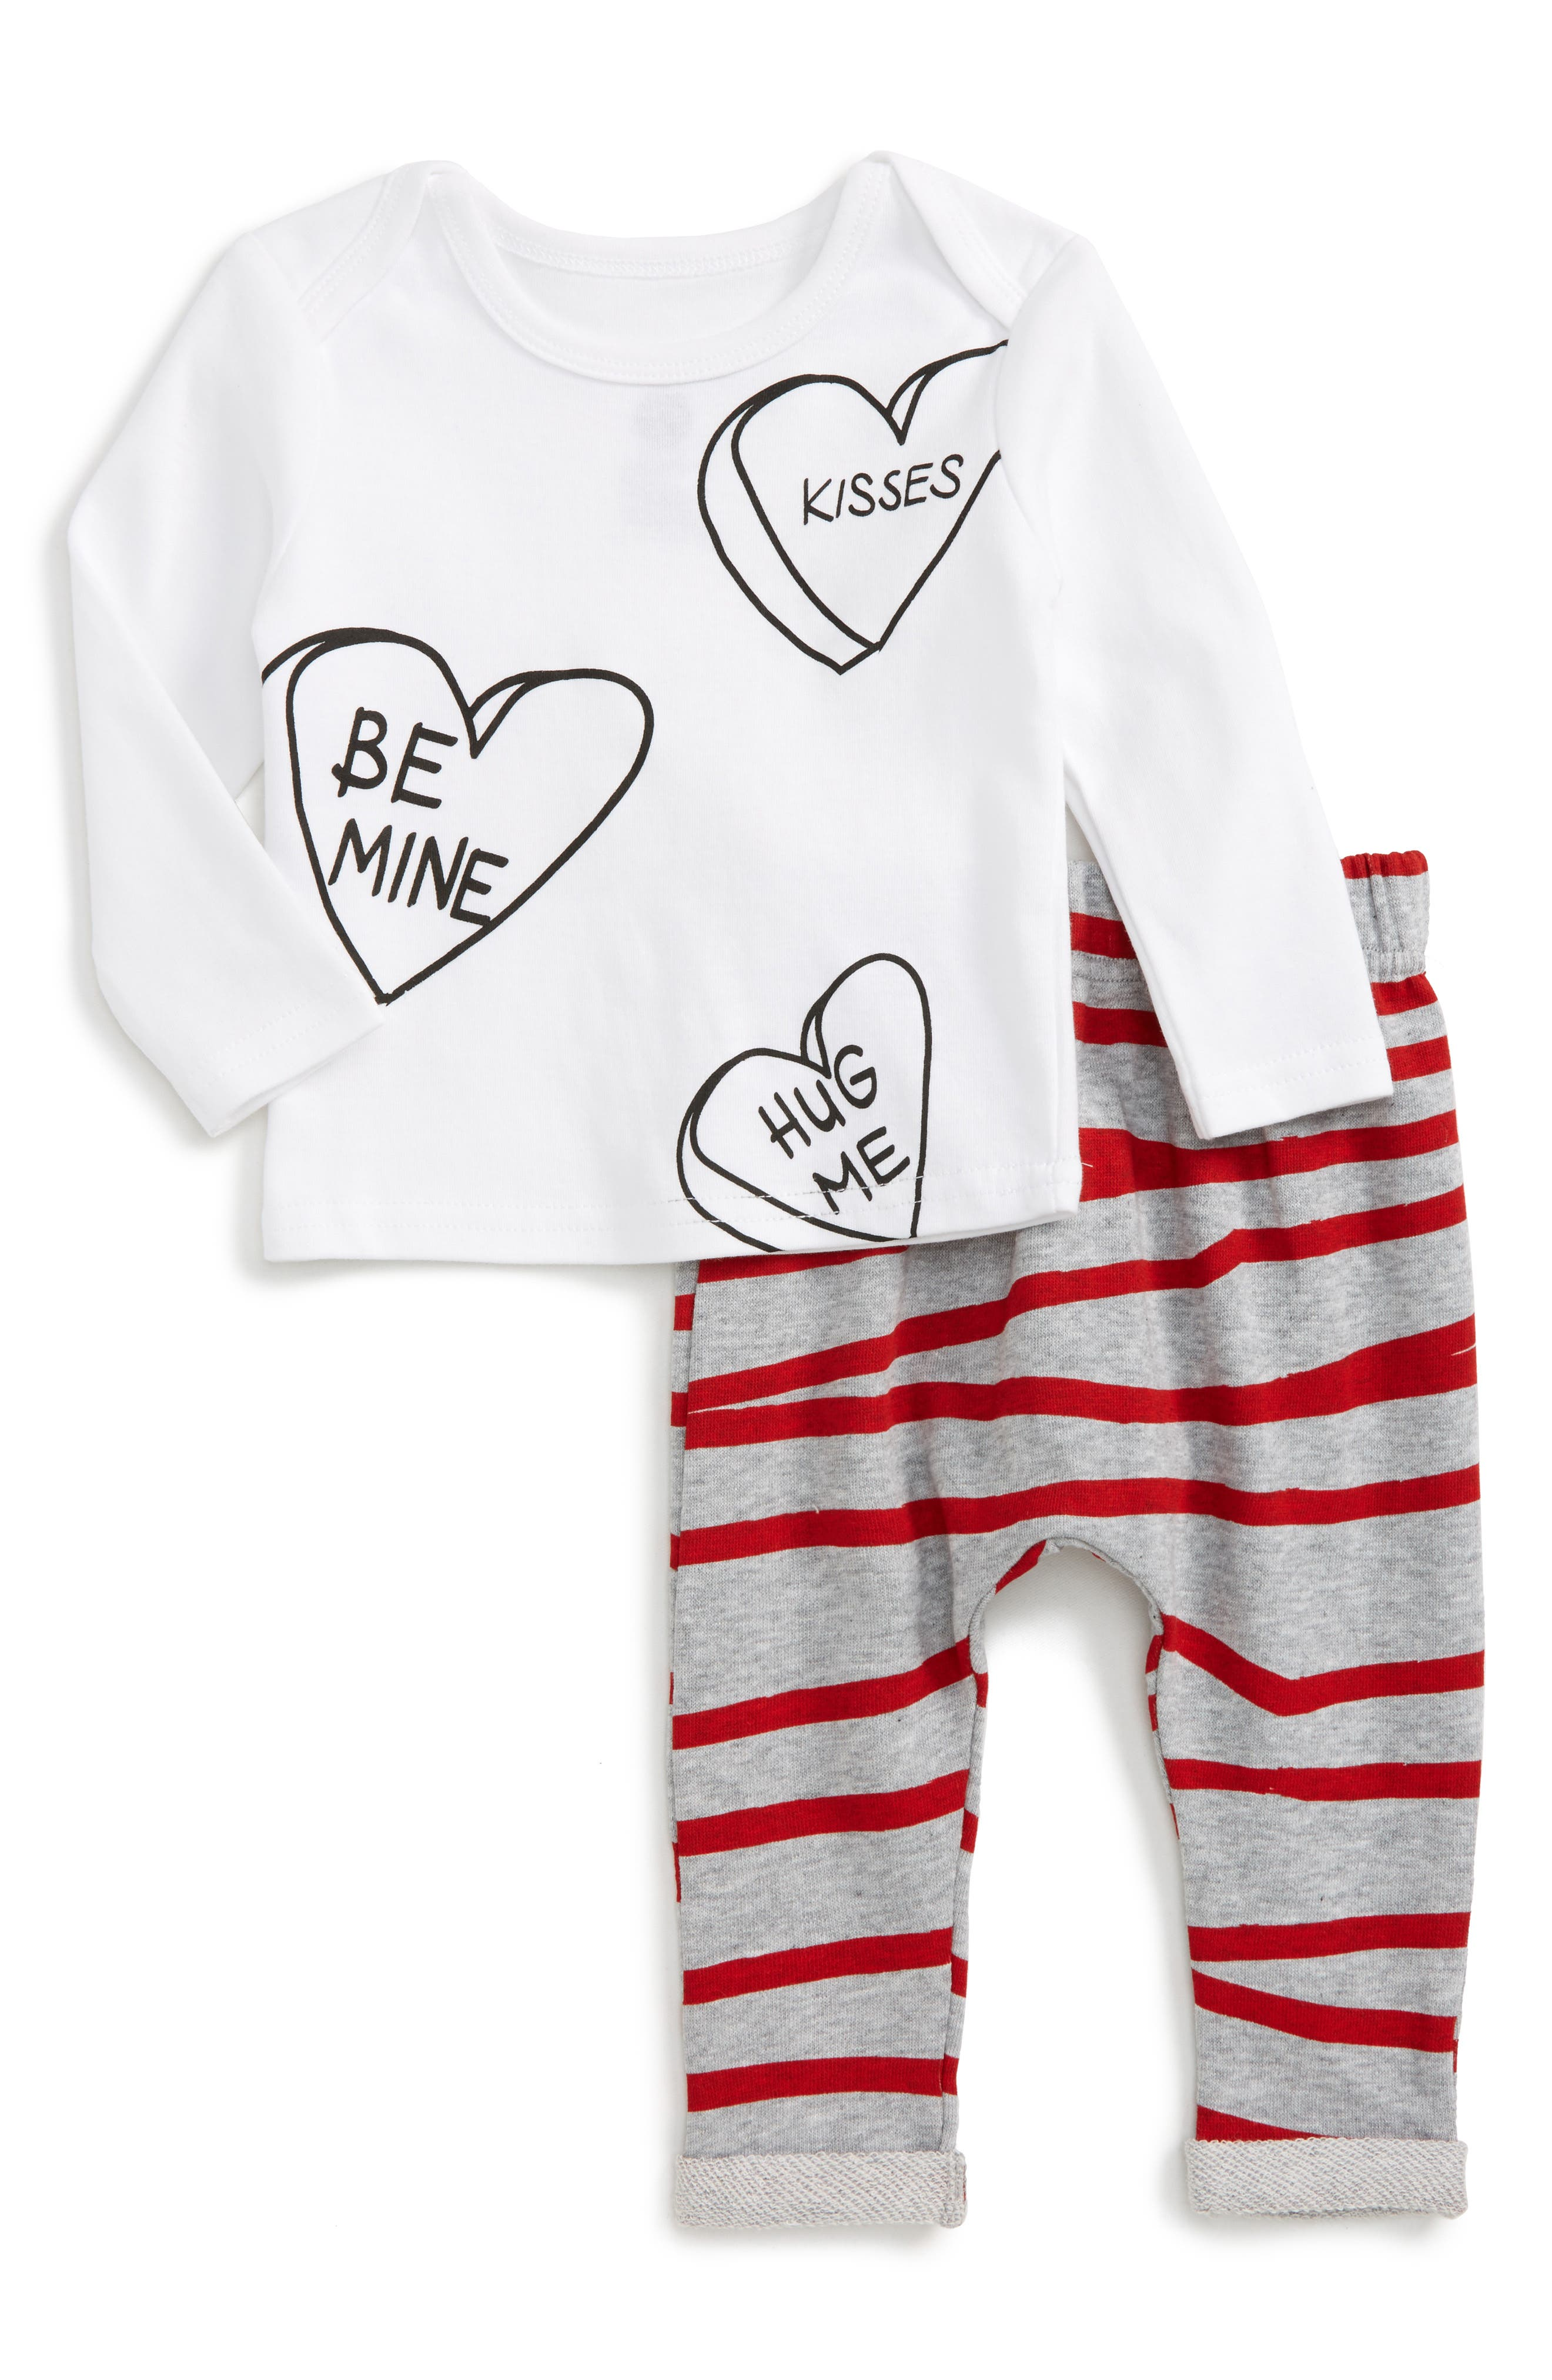 Be Mine Tee & Stripe Sweatpants Set,                             Main thumbnail 1, color,                             White/ Grey Marle